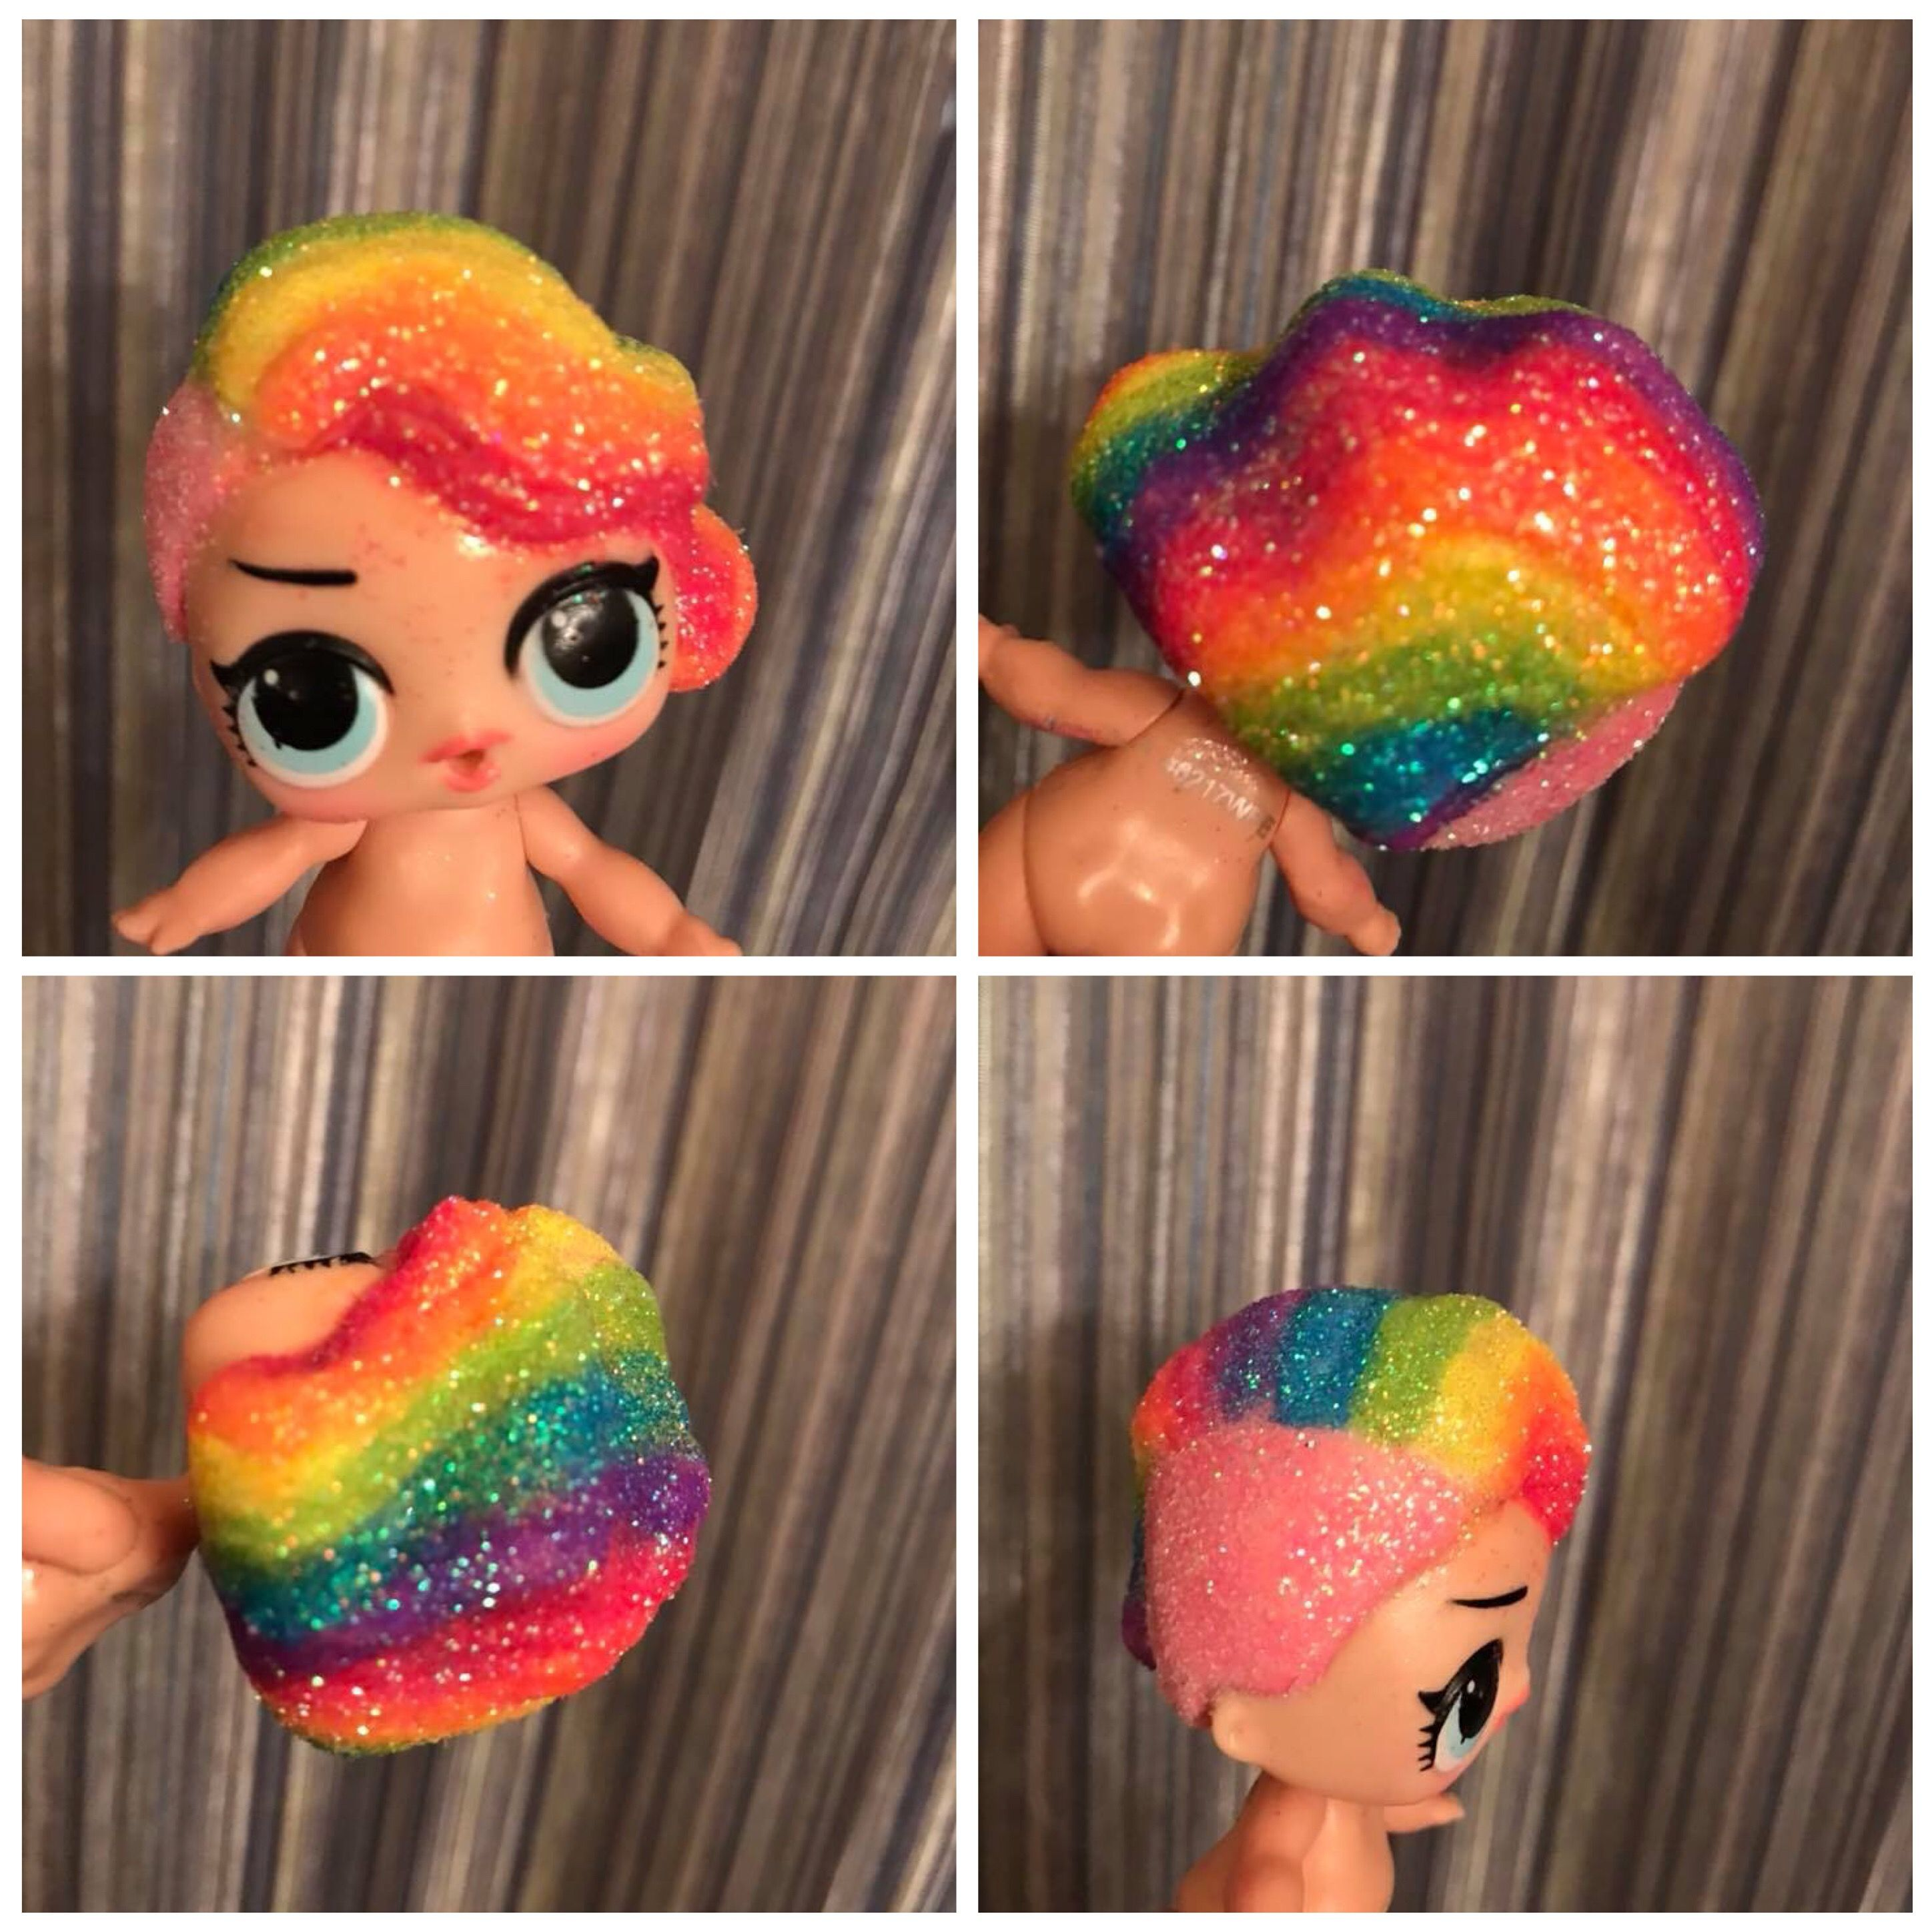 Stunning And Surprising New Looks: Look At This Custom Painted LOL Surprise Doll! Her Hair